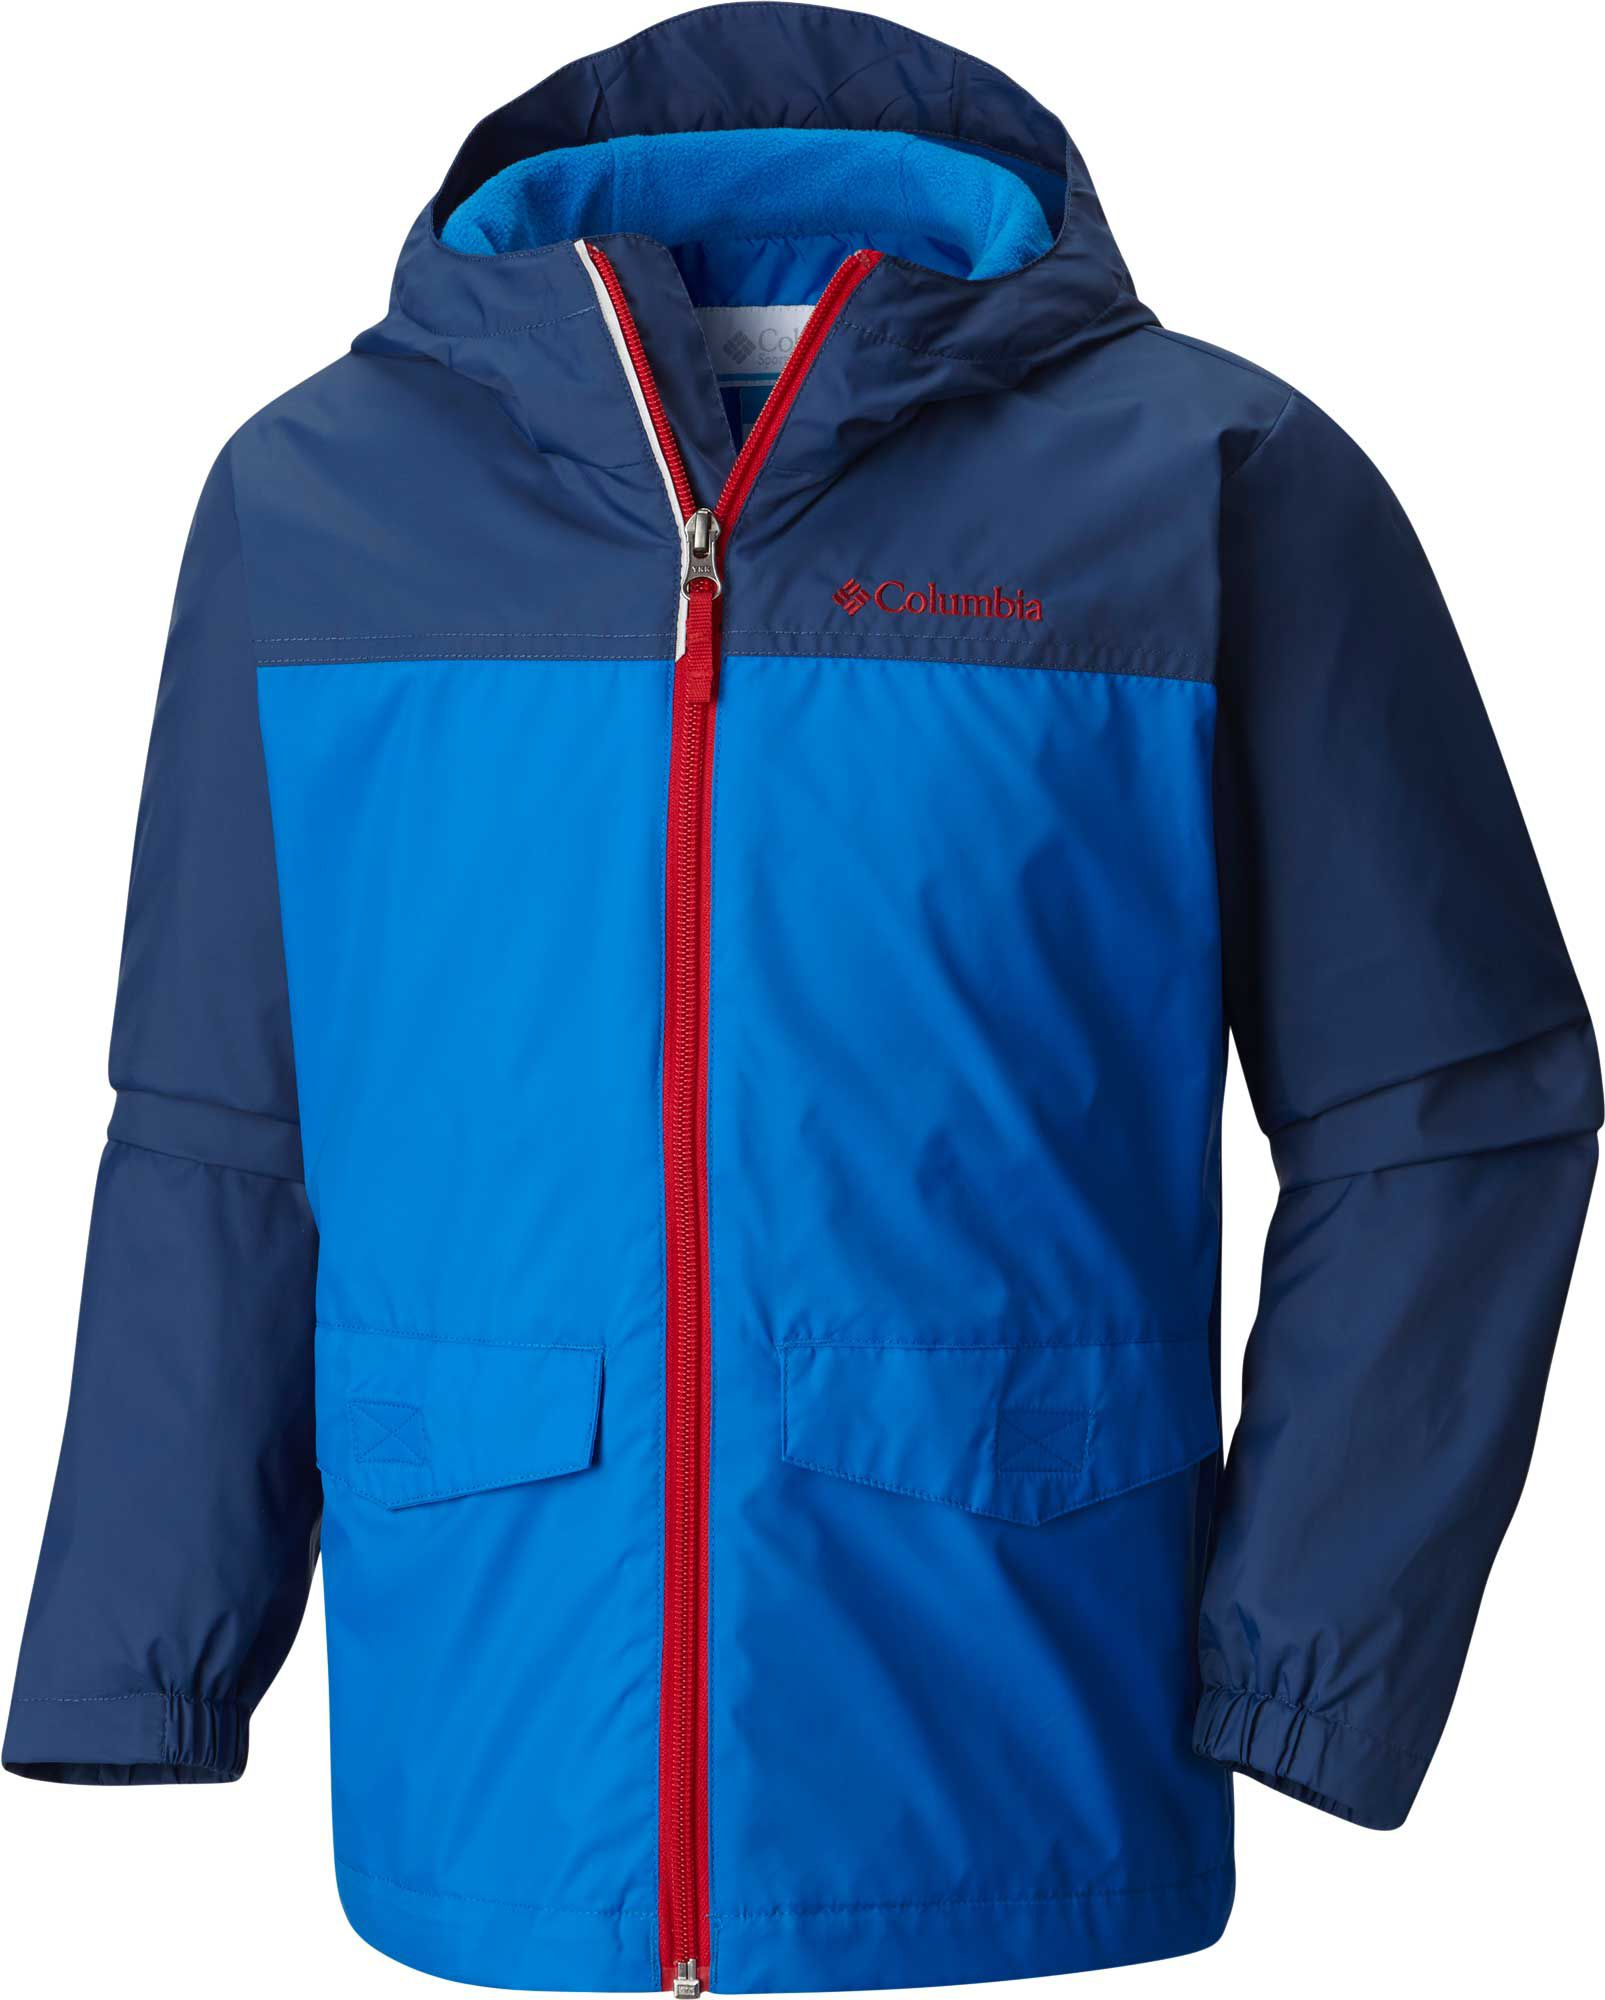 columbia toddler boys rain zilla rain jacket dick s sporting goods #2: 16cmbttddbrnzlljcapo super blue carbon is